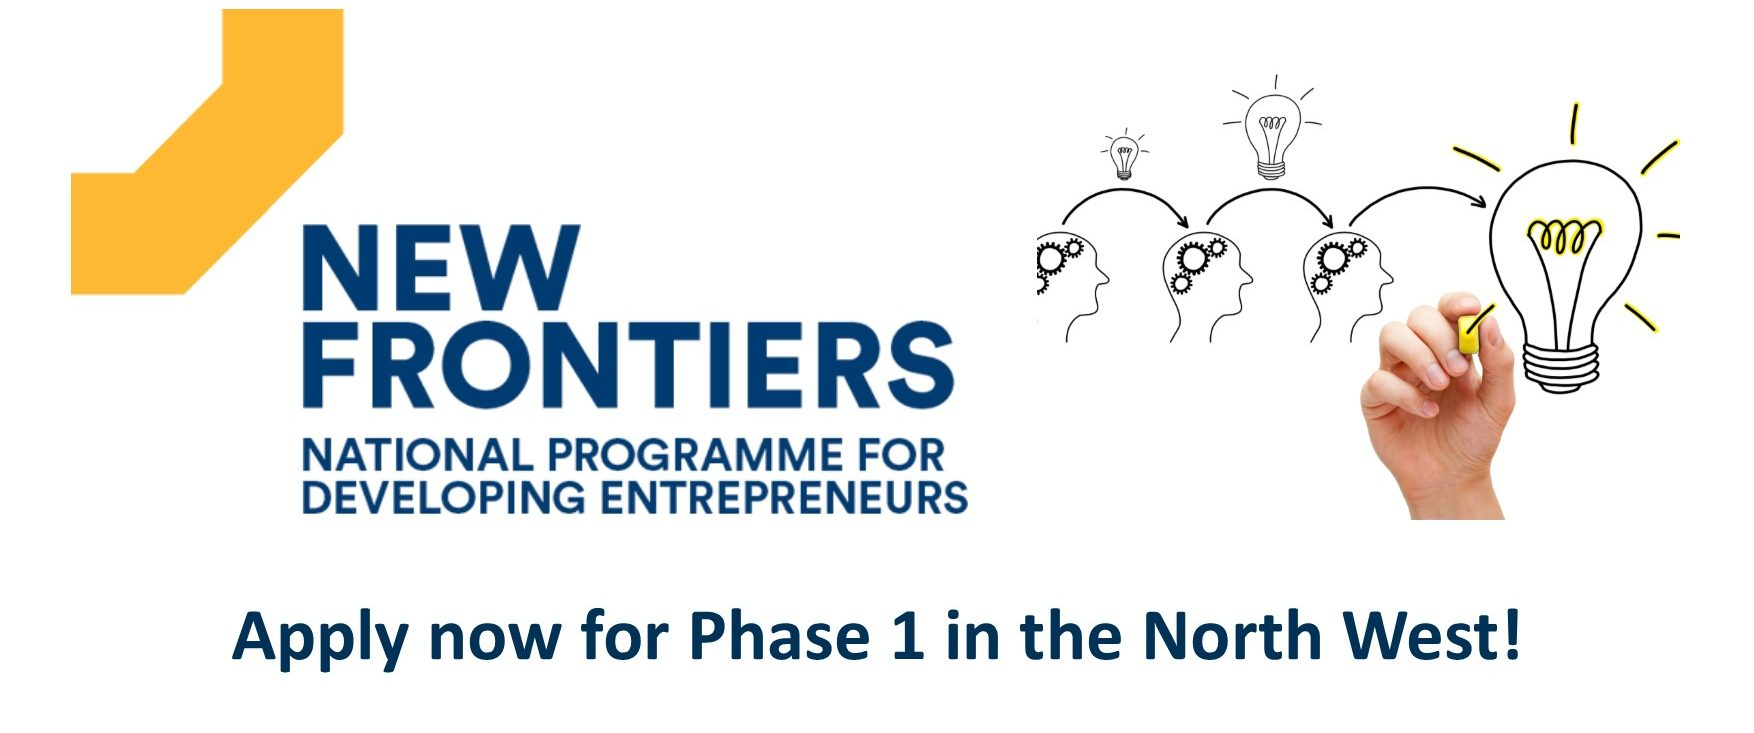 Want a new opportunity? New Frontiers in the North West is Recruiting a Programme Manager